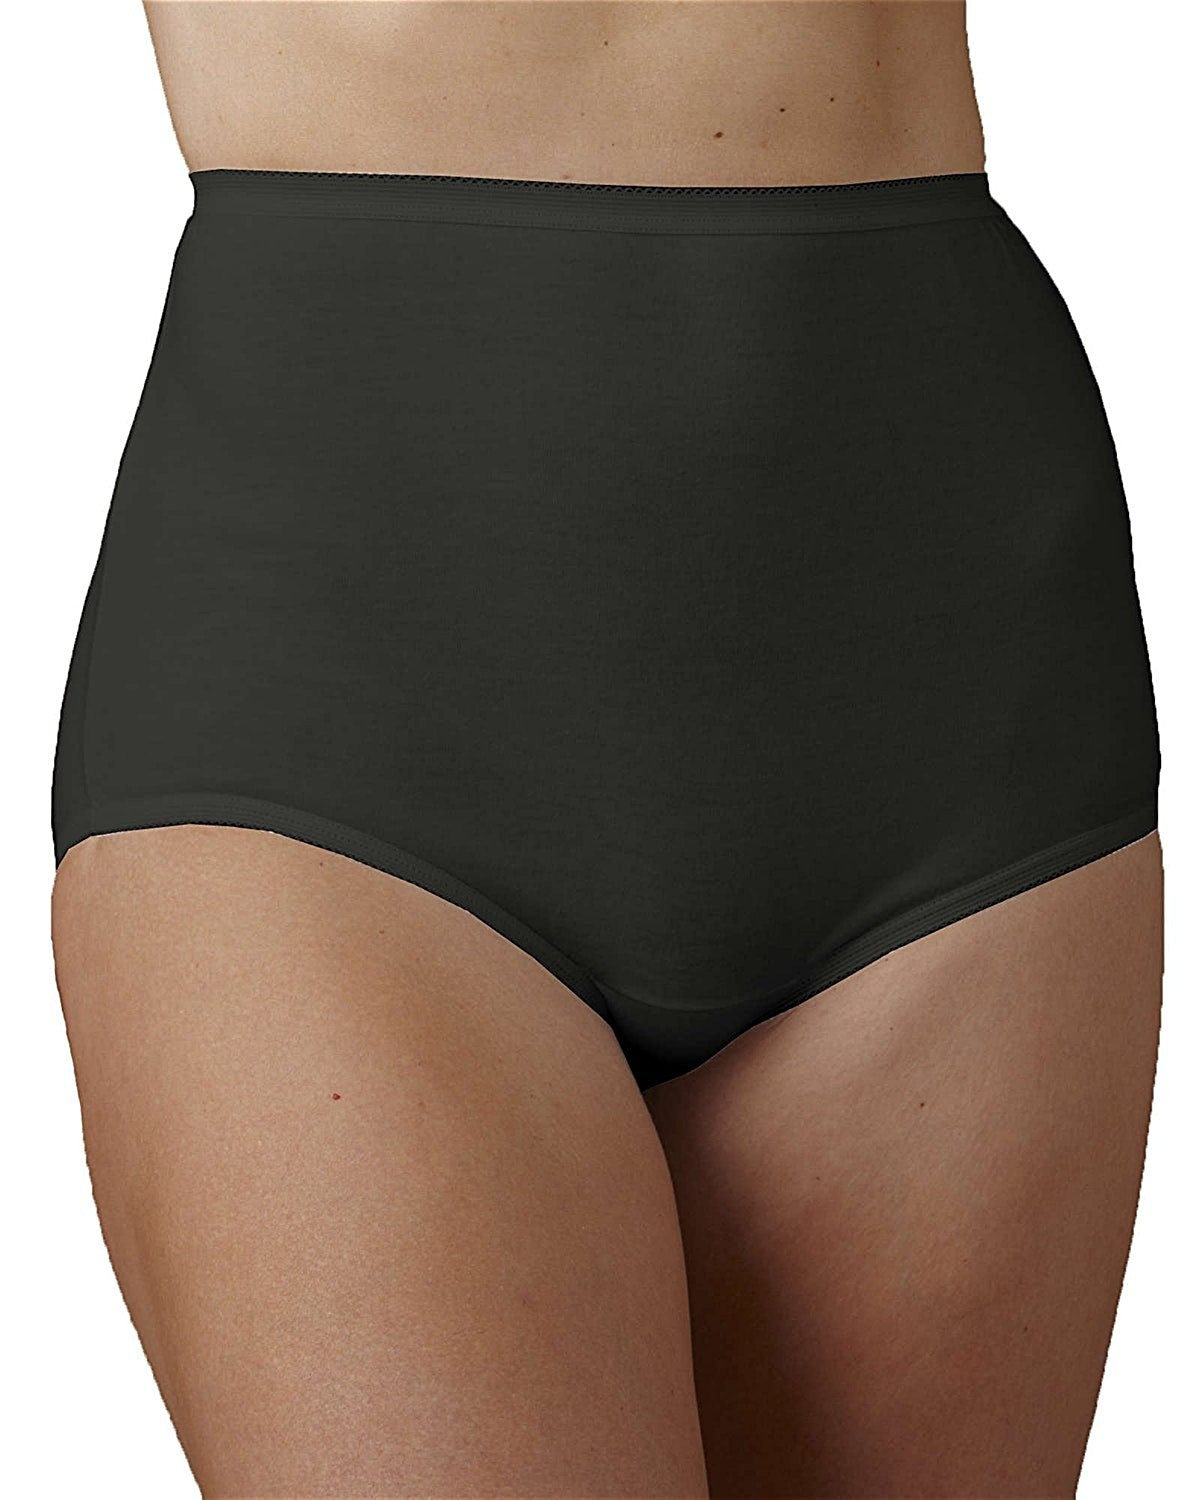 Jockey Sport Trunk Quick dry Microfiber Breathable Underwear S-2XL